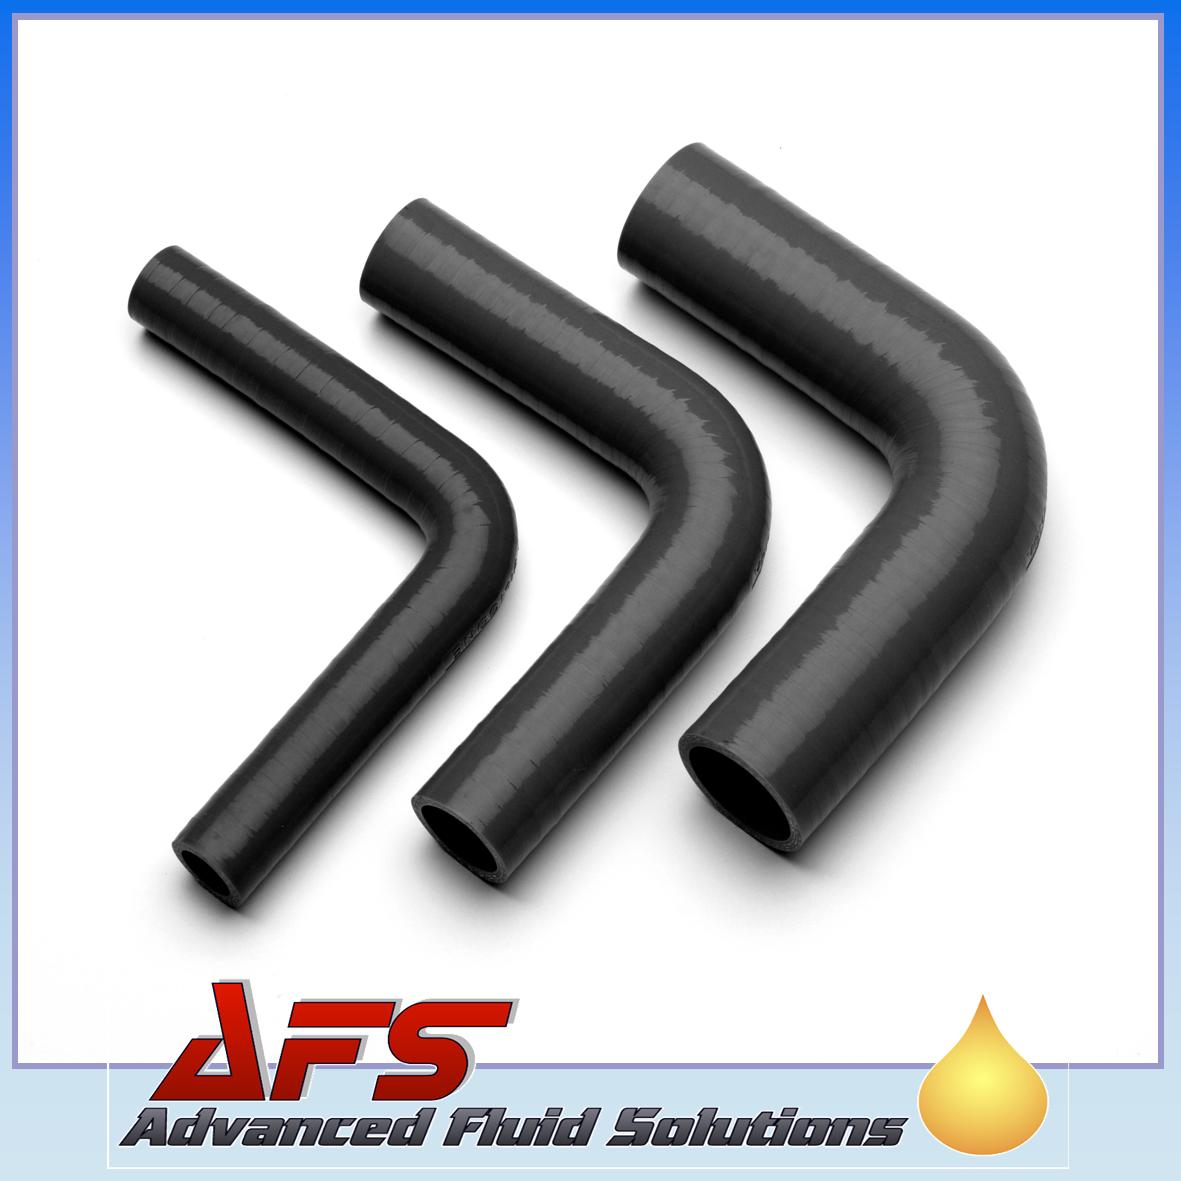 Mm black degree silicone elbow hose pipe